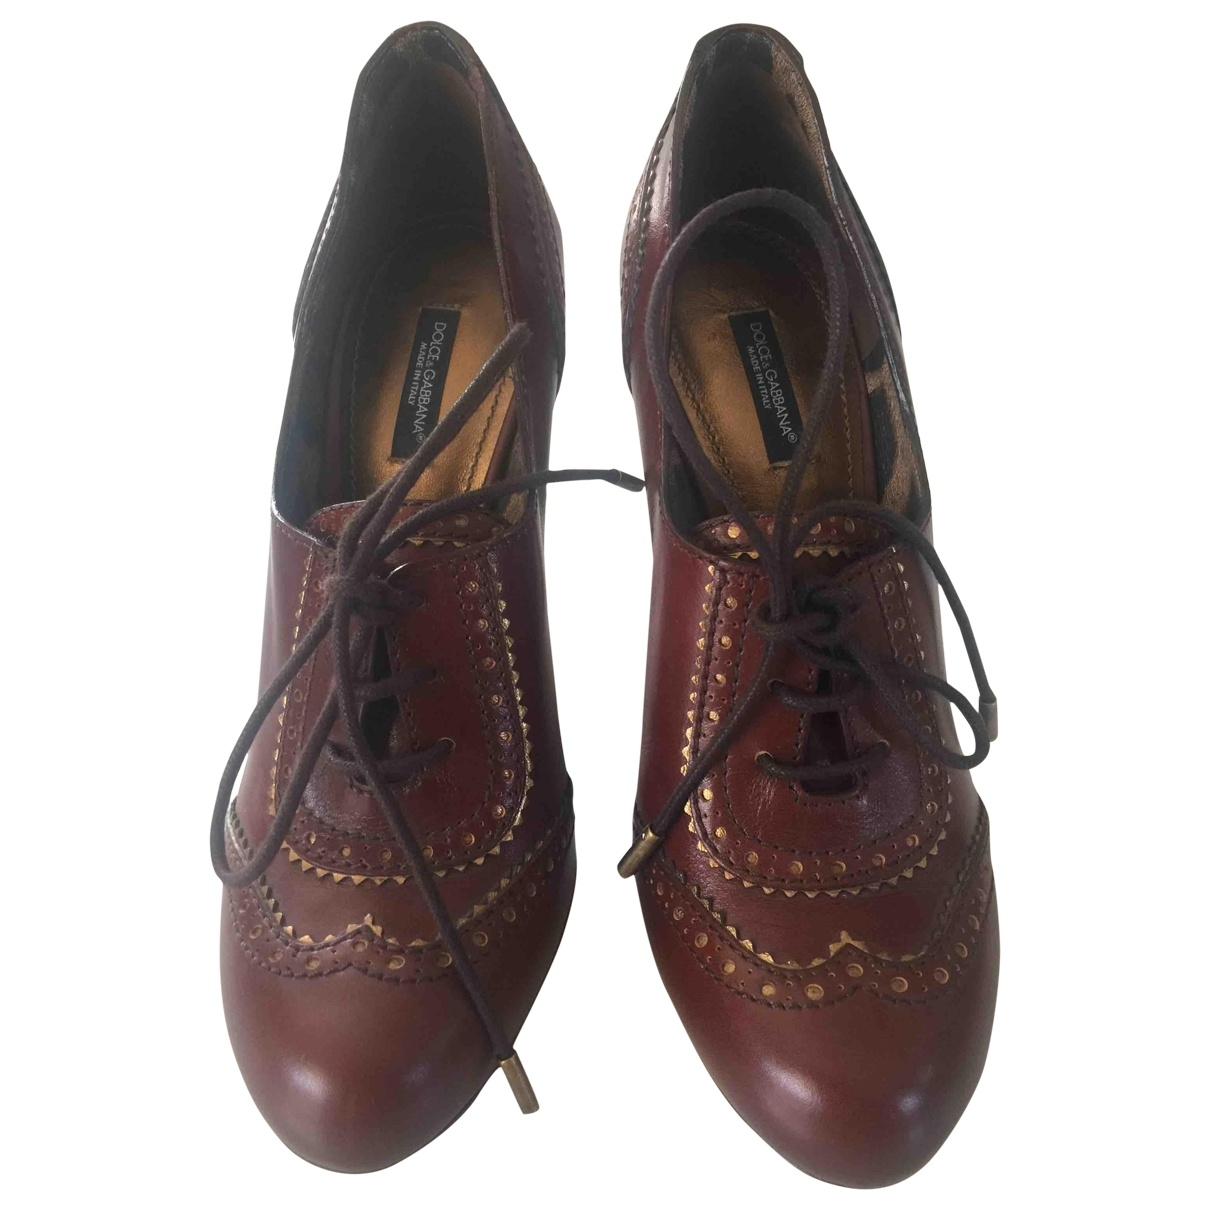 Dolce & Gabbana \N Burgundy Leather Ankle boots for Women 39 EU